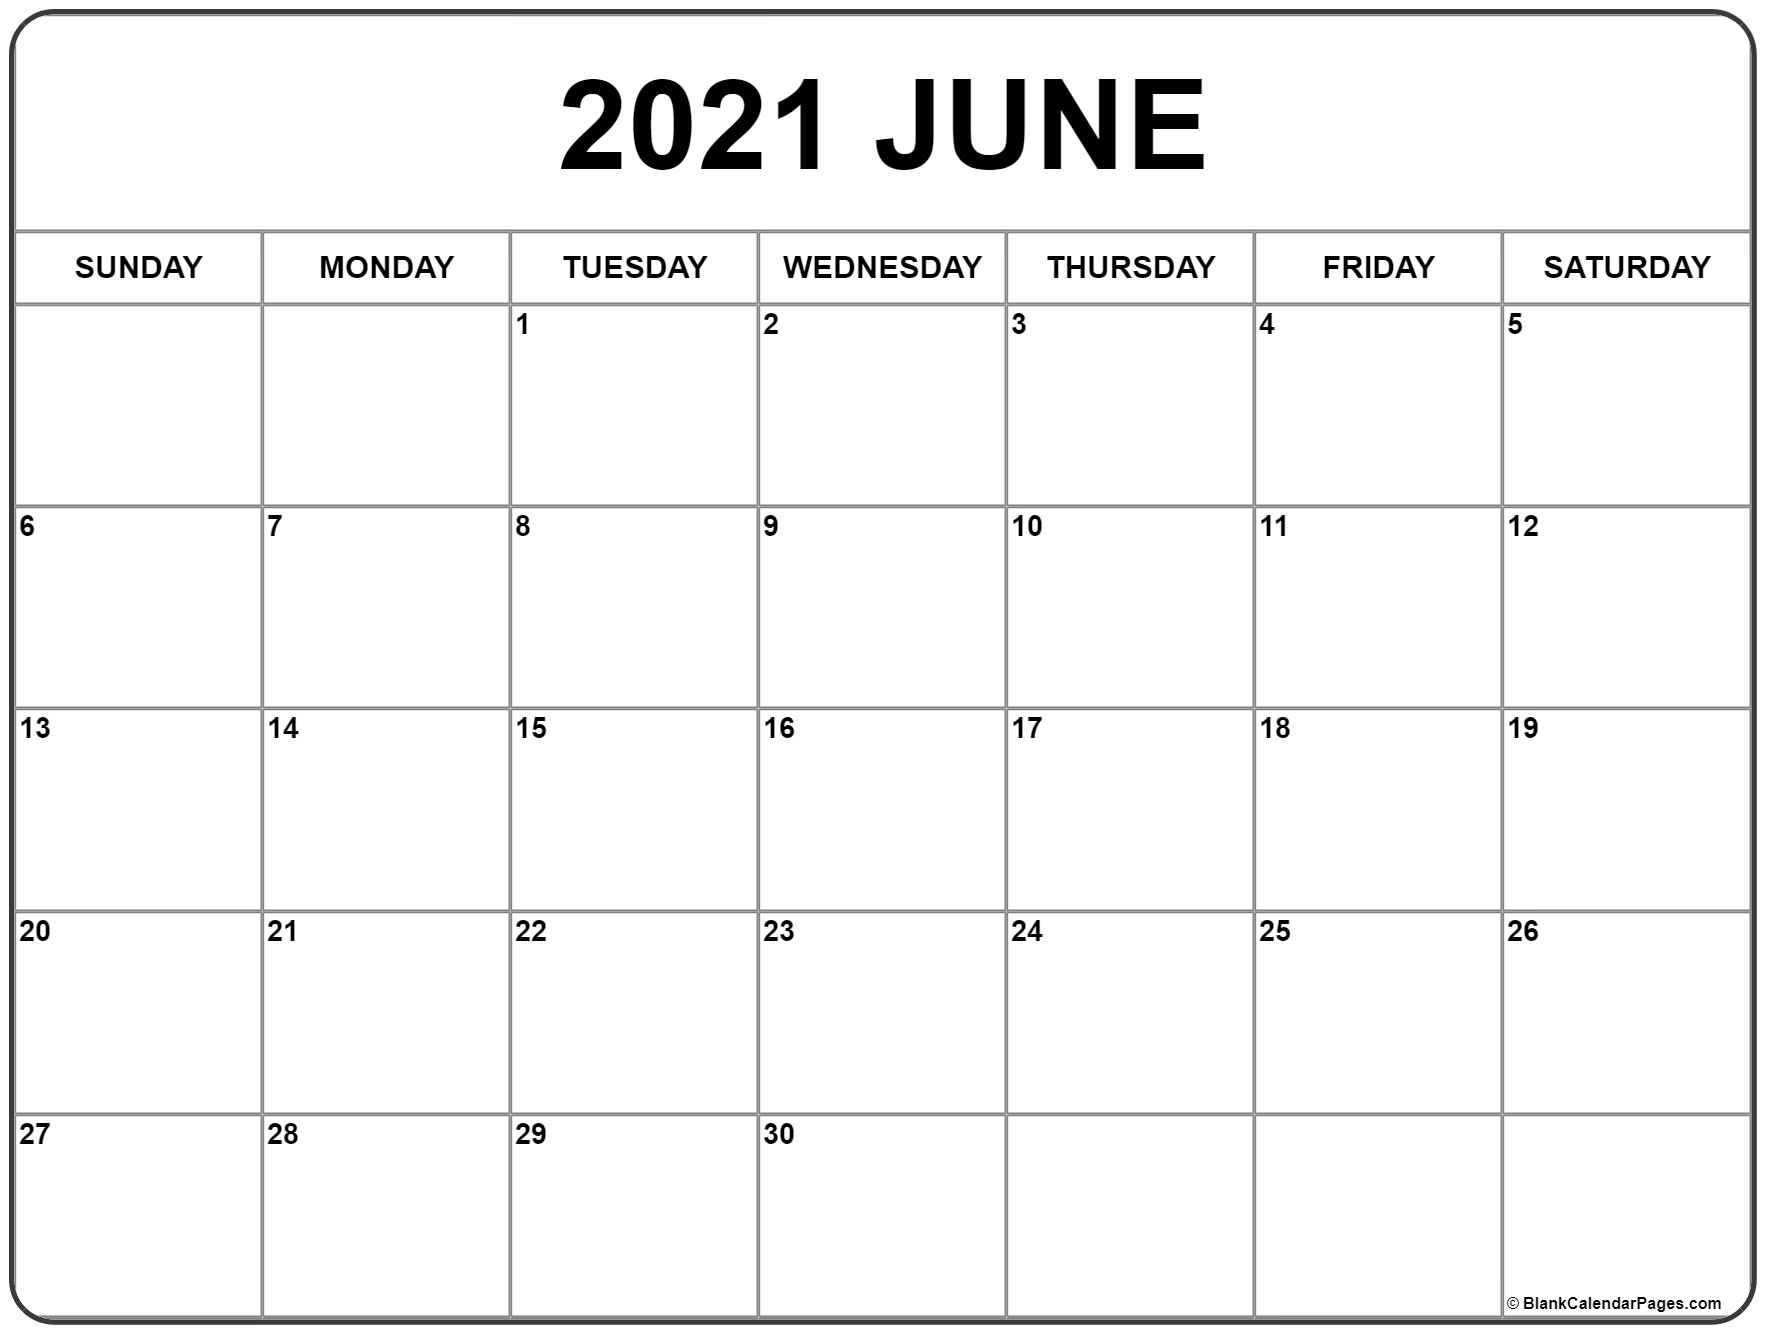 June 2021 Calendar | Free Printable Monthly Calendars regarding Free Printable Pocket Calendar 2021